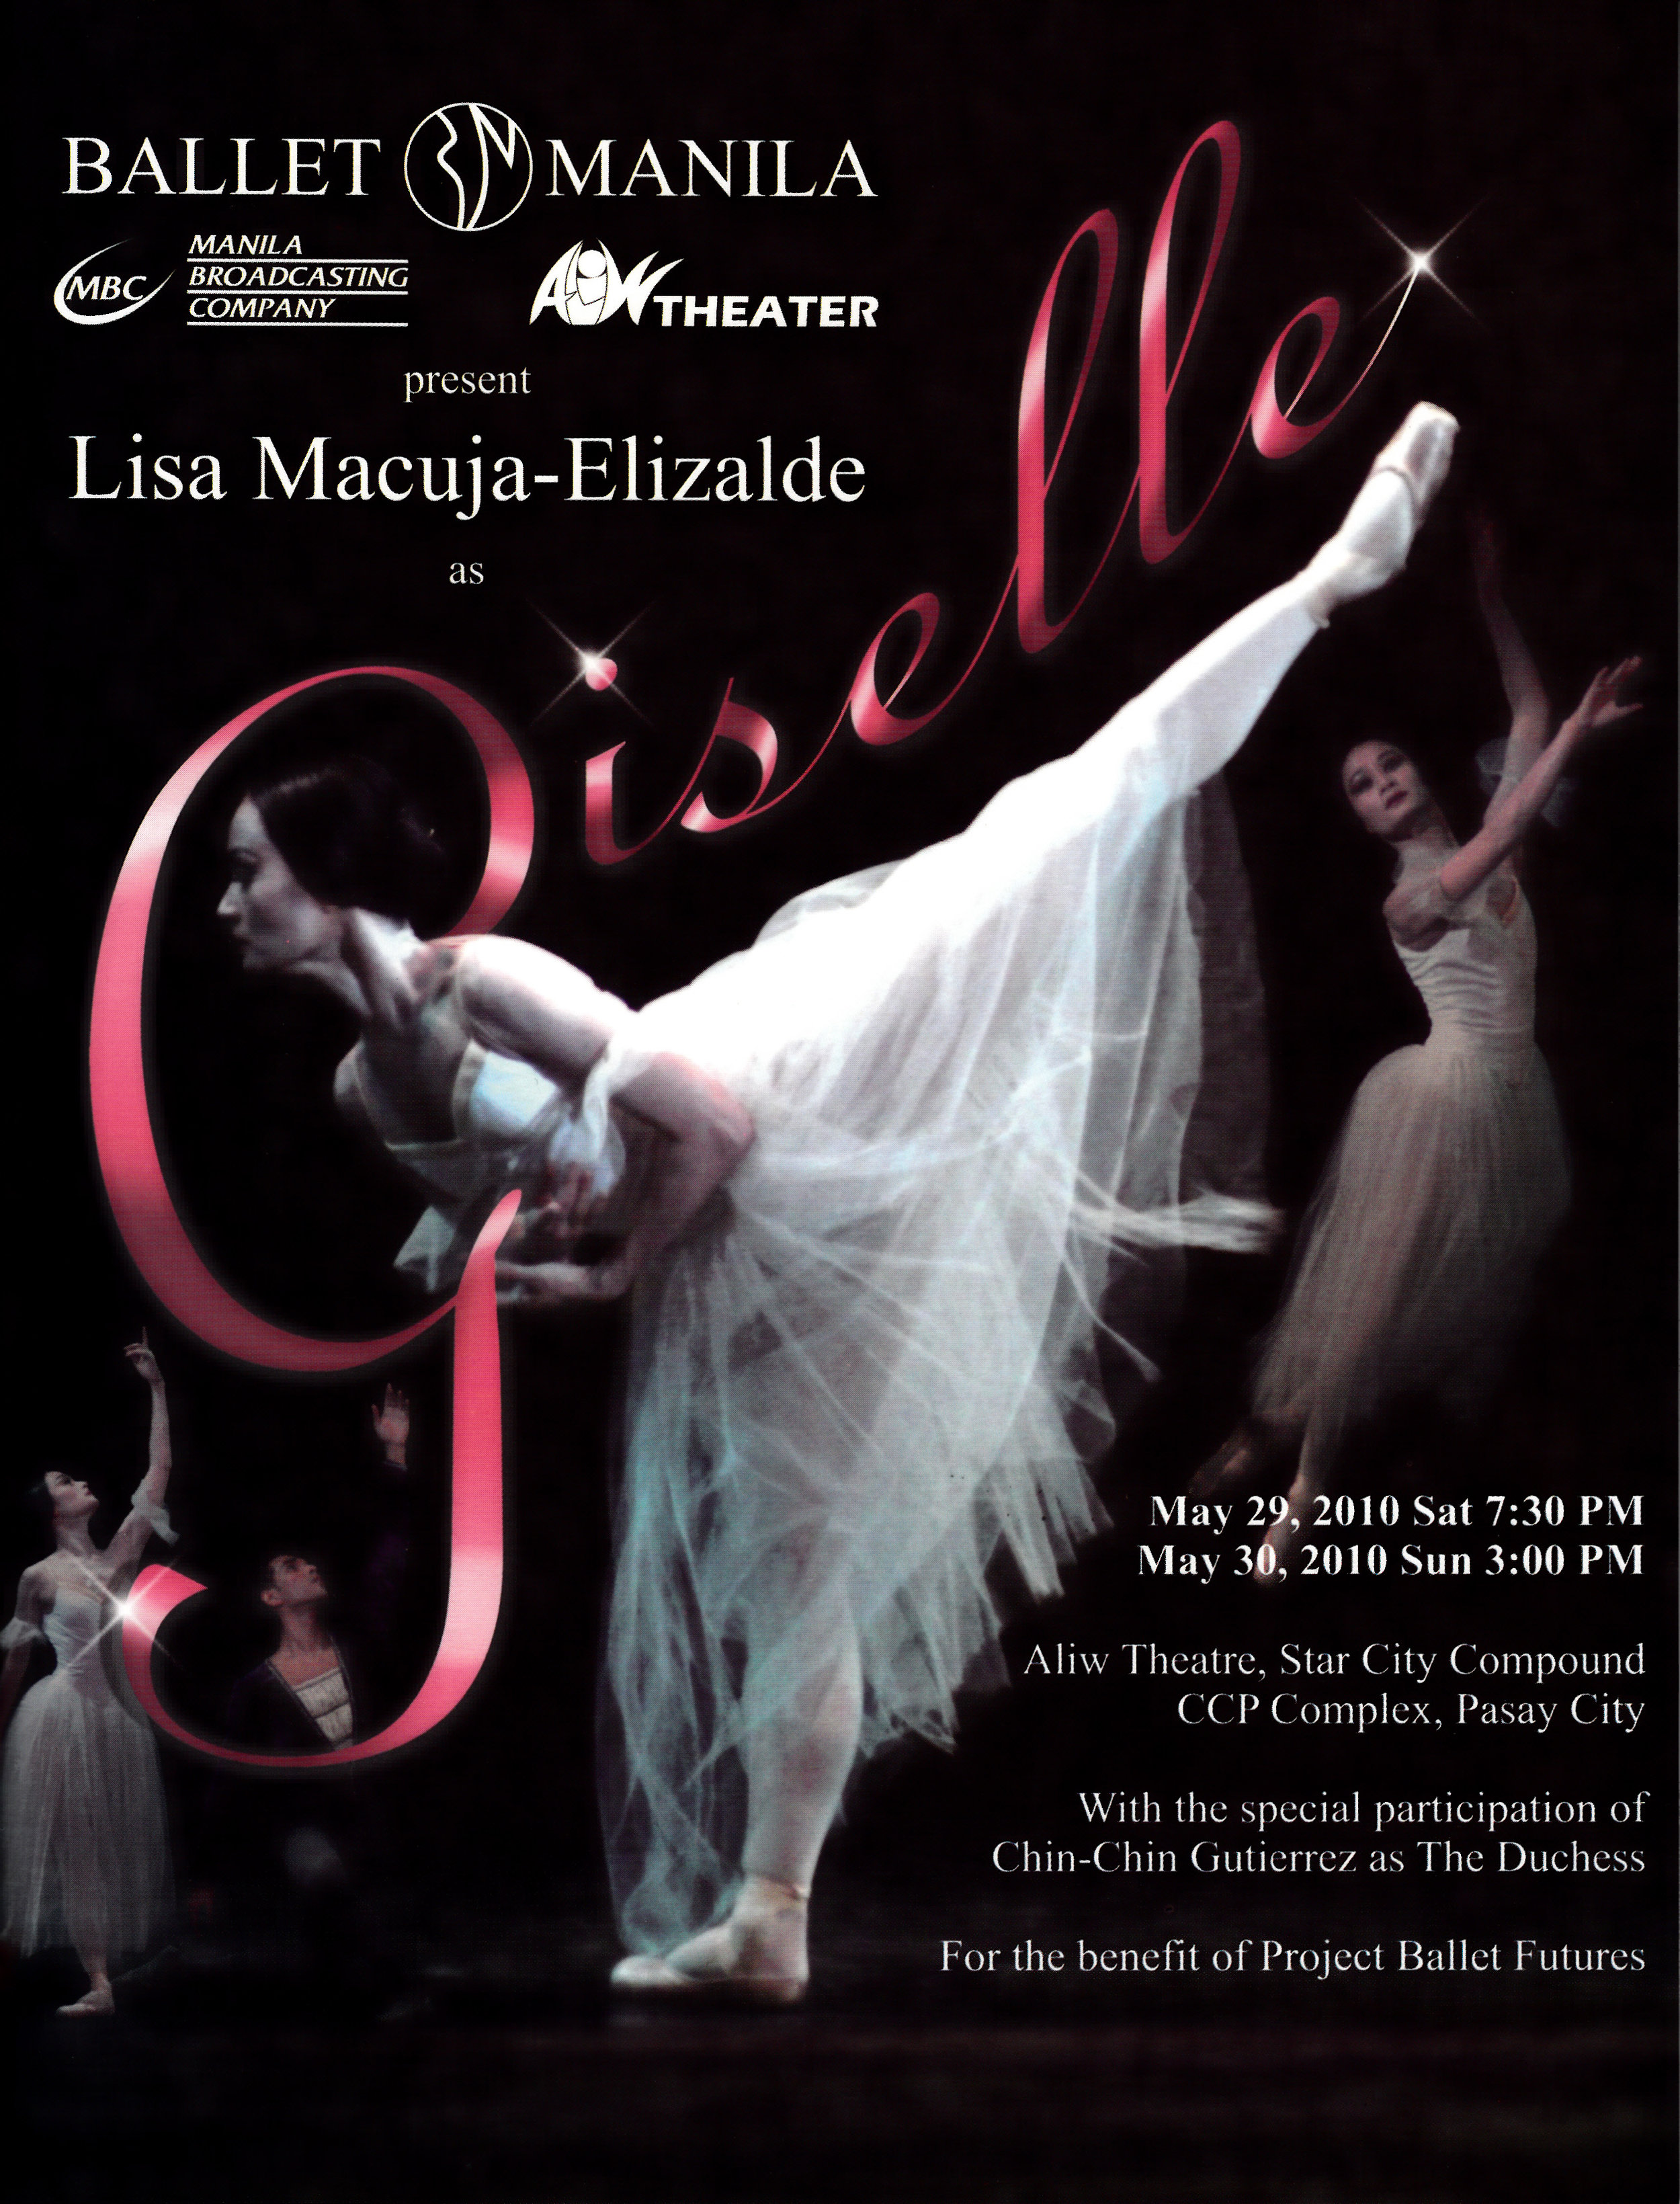 Cover of the Giselle souvenir program. From the Ballet Manila Archives collection